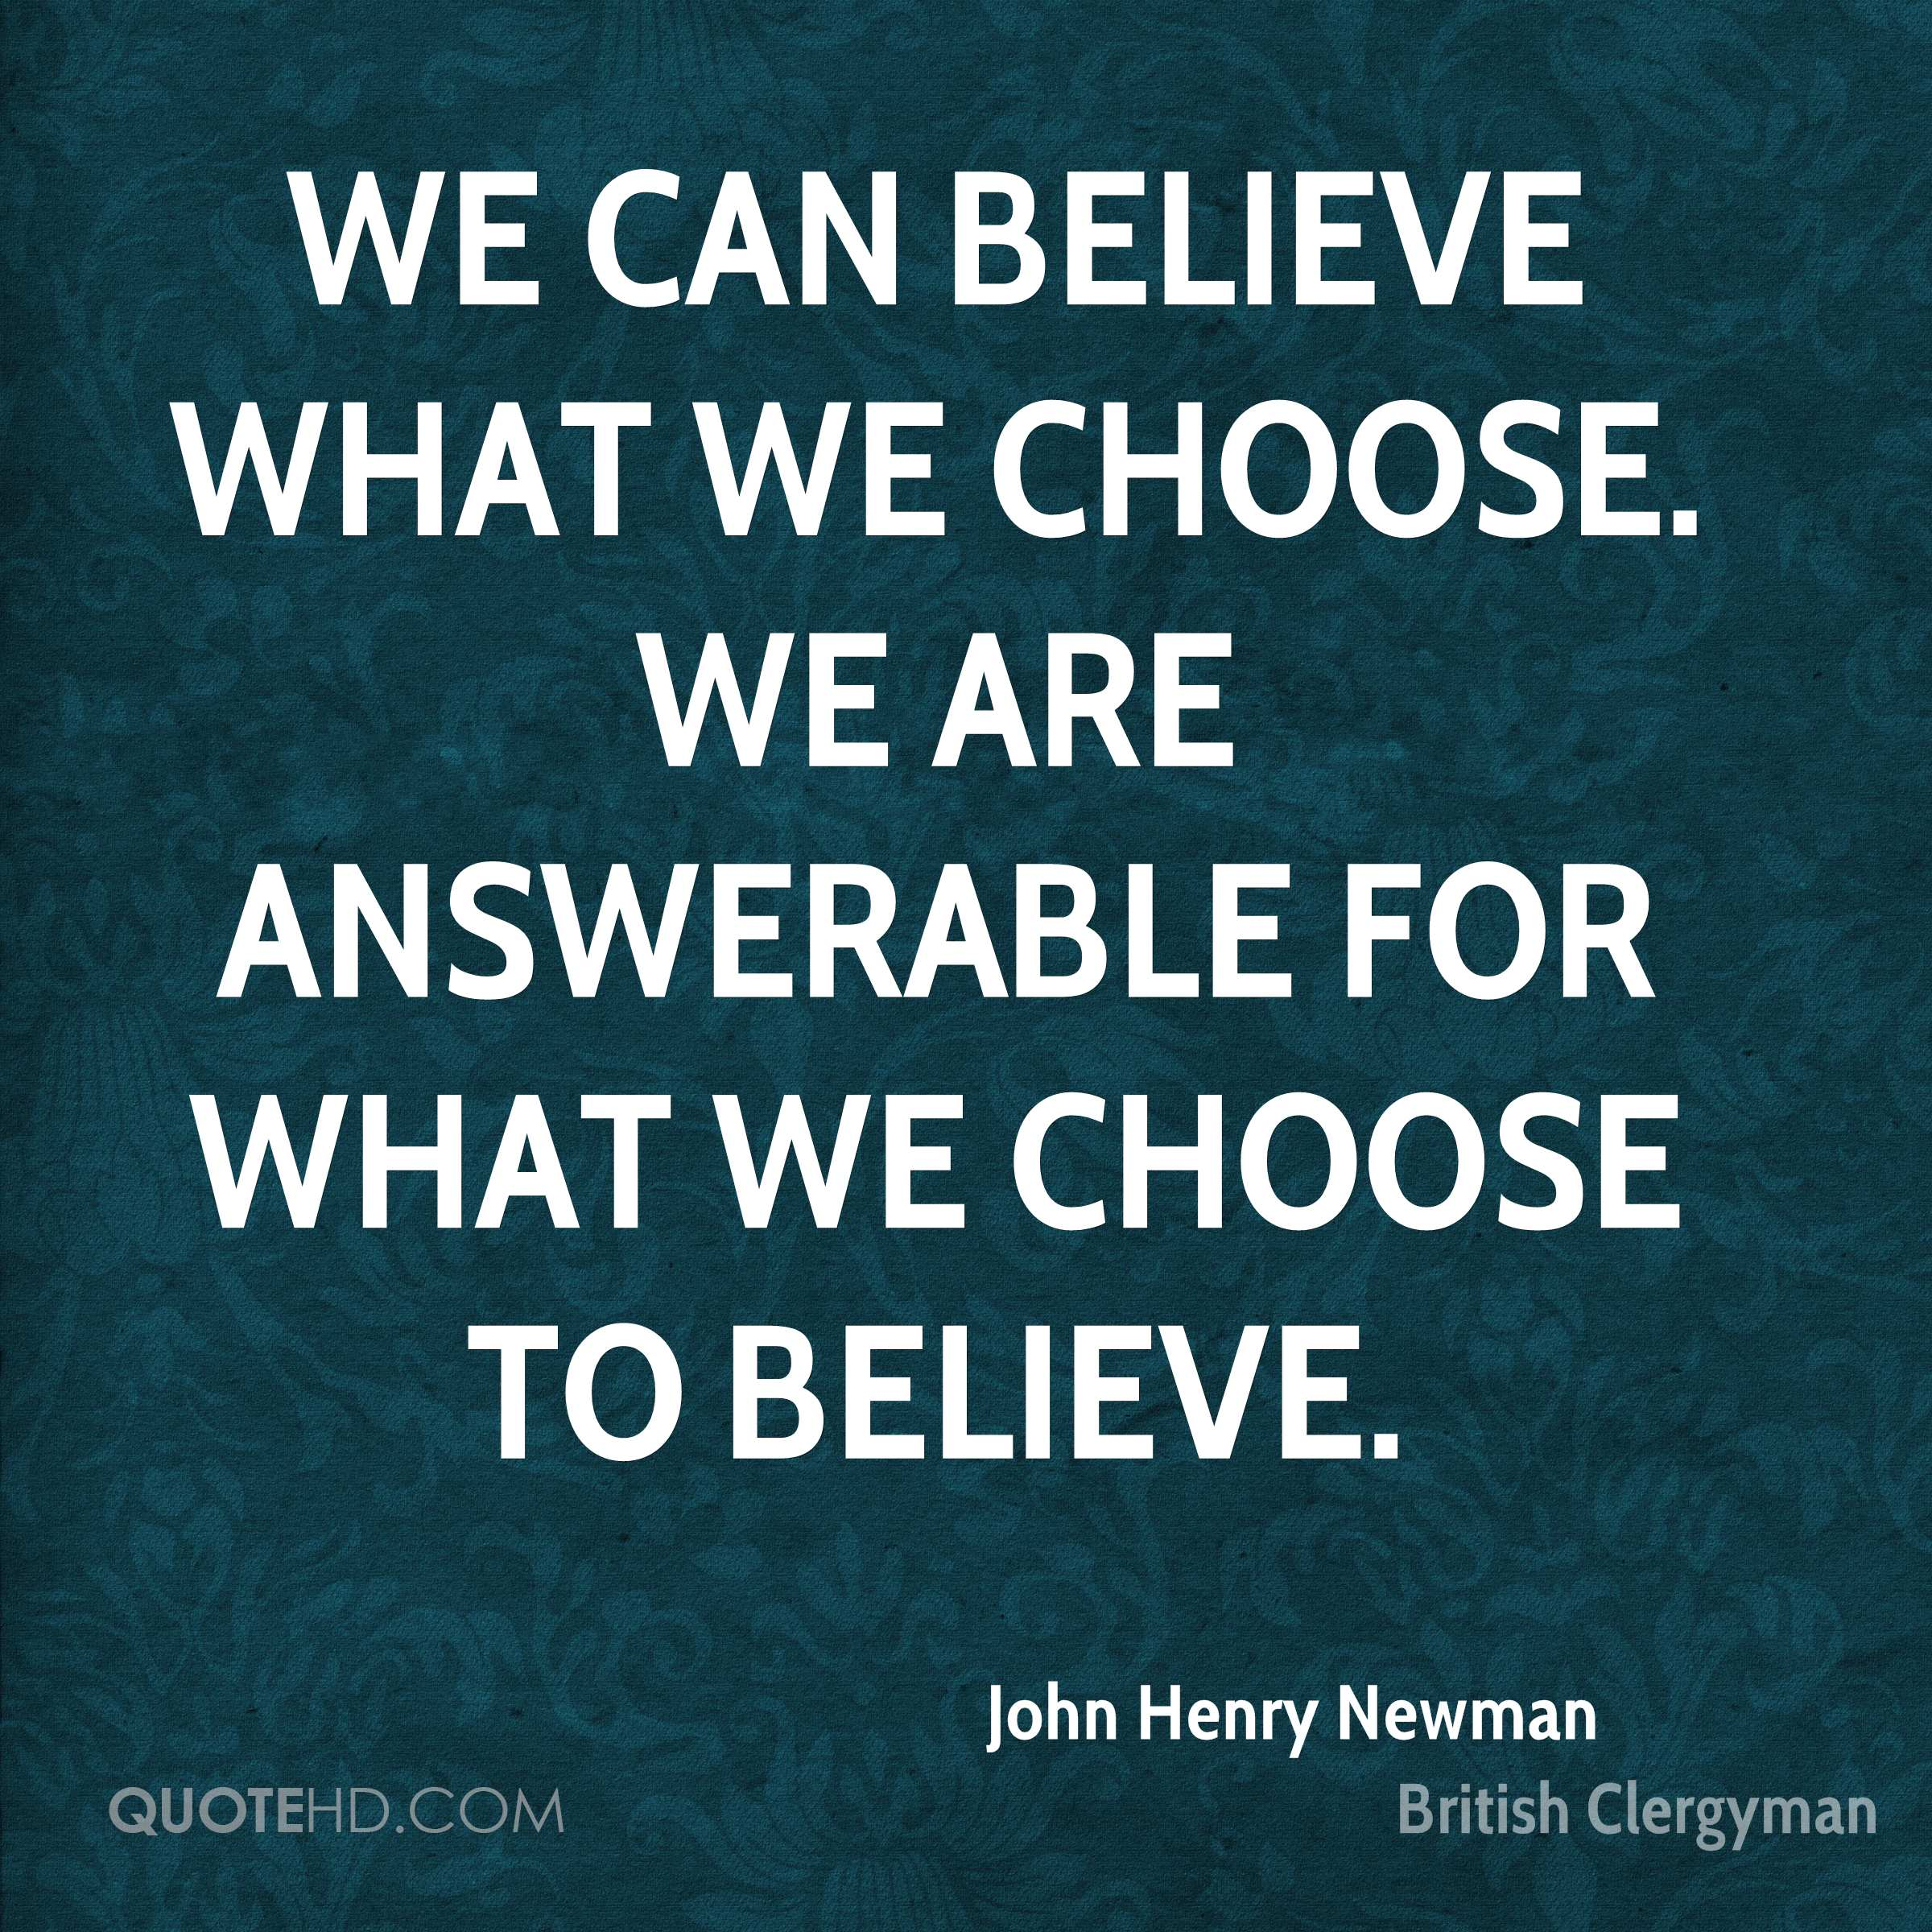 We can believe what we choose. We are answerable for what we choose to believe.